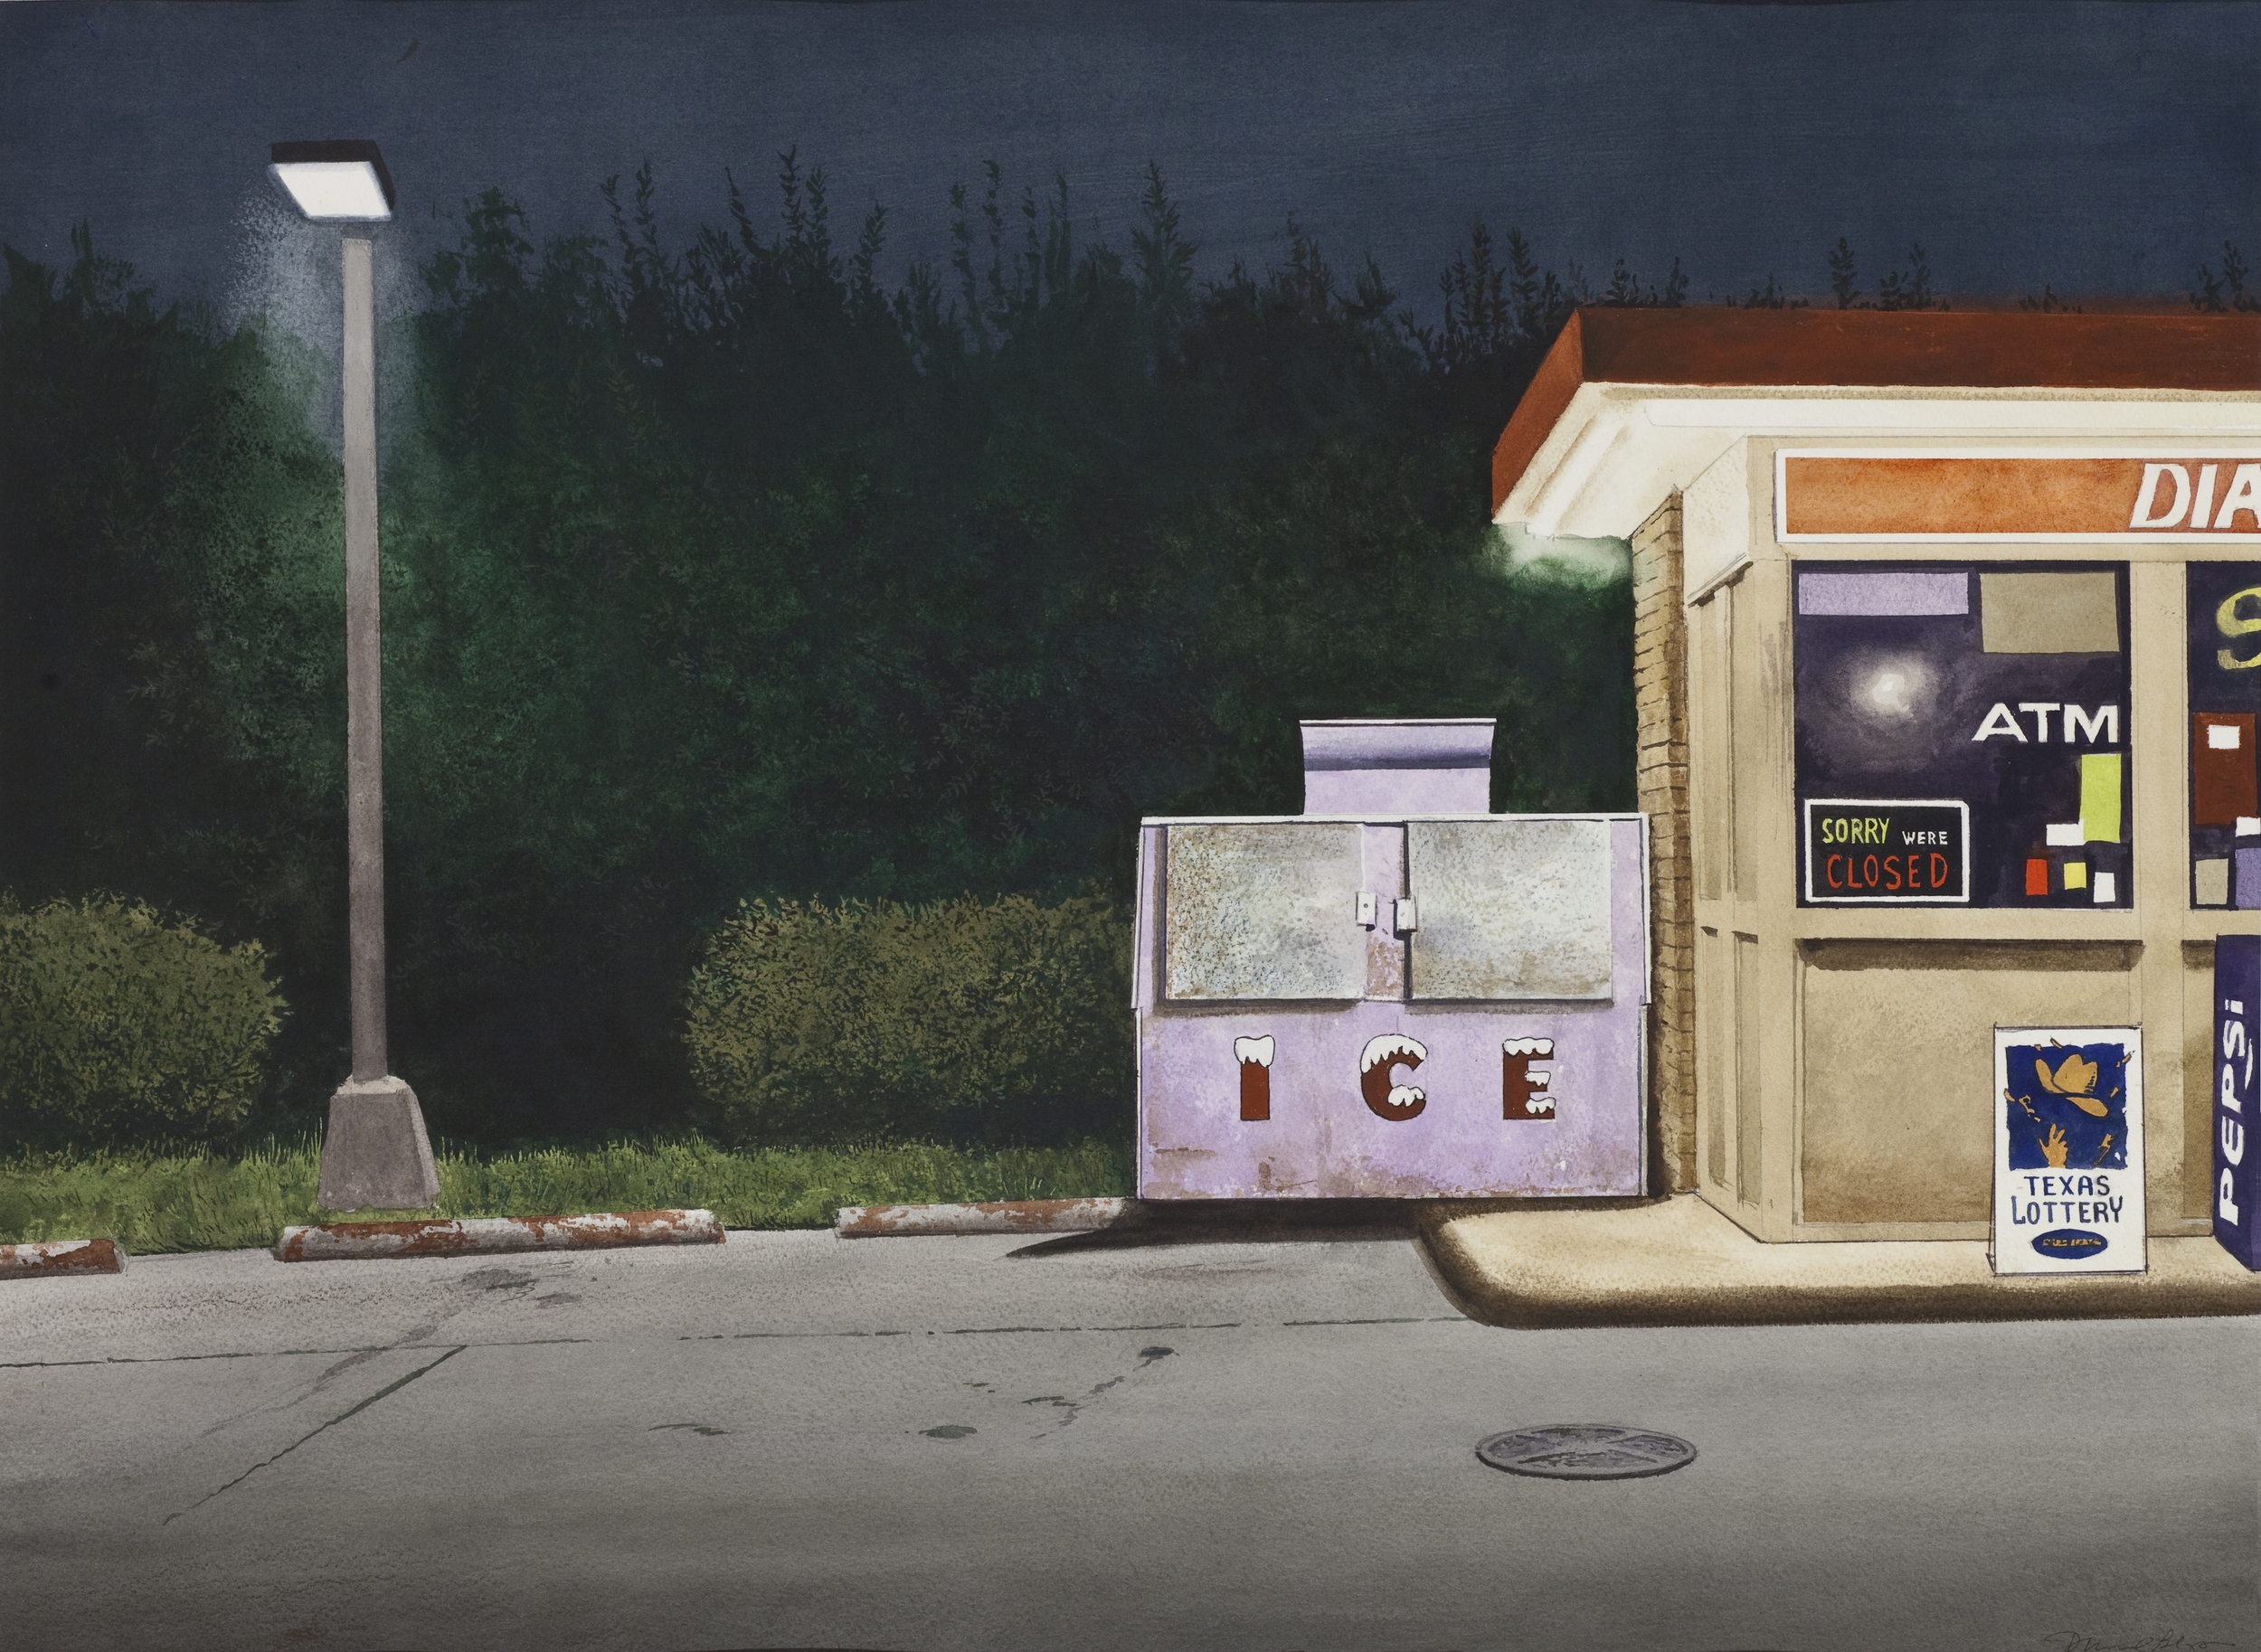 "Daniel Blagg, Night Ice, 2012, watercolor on paper, 27 1/2 x 35"". Private Collection, Fort Worth, TX."